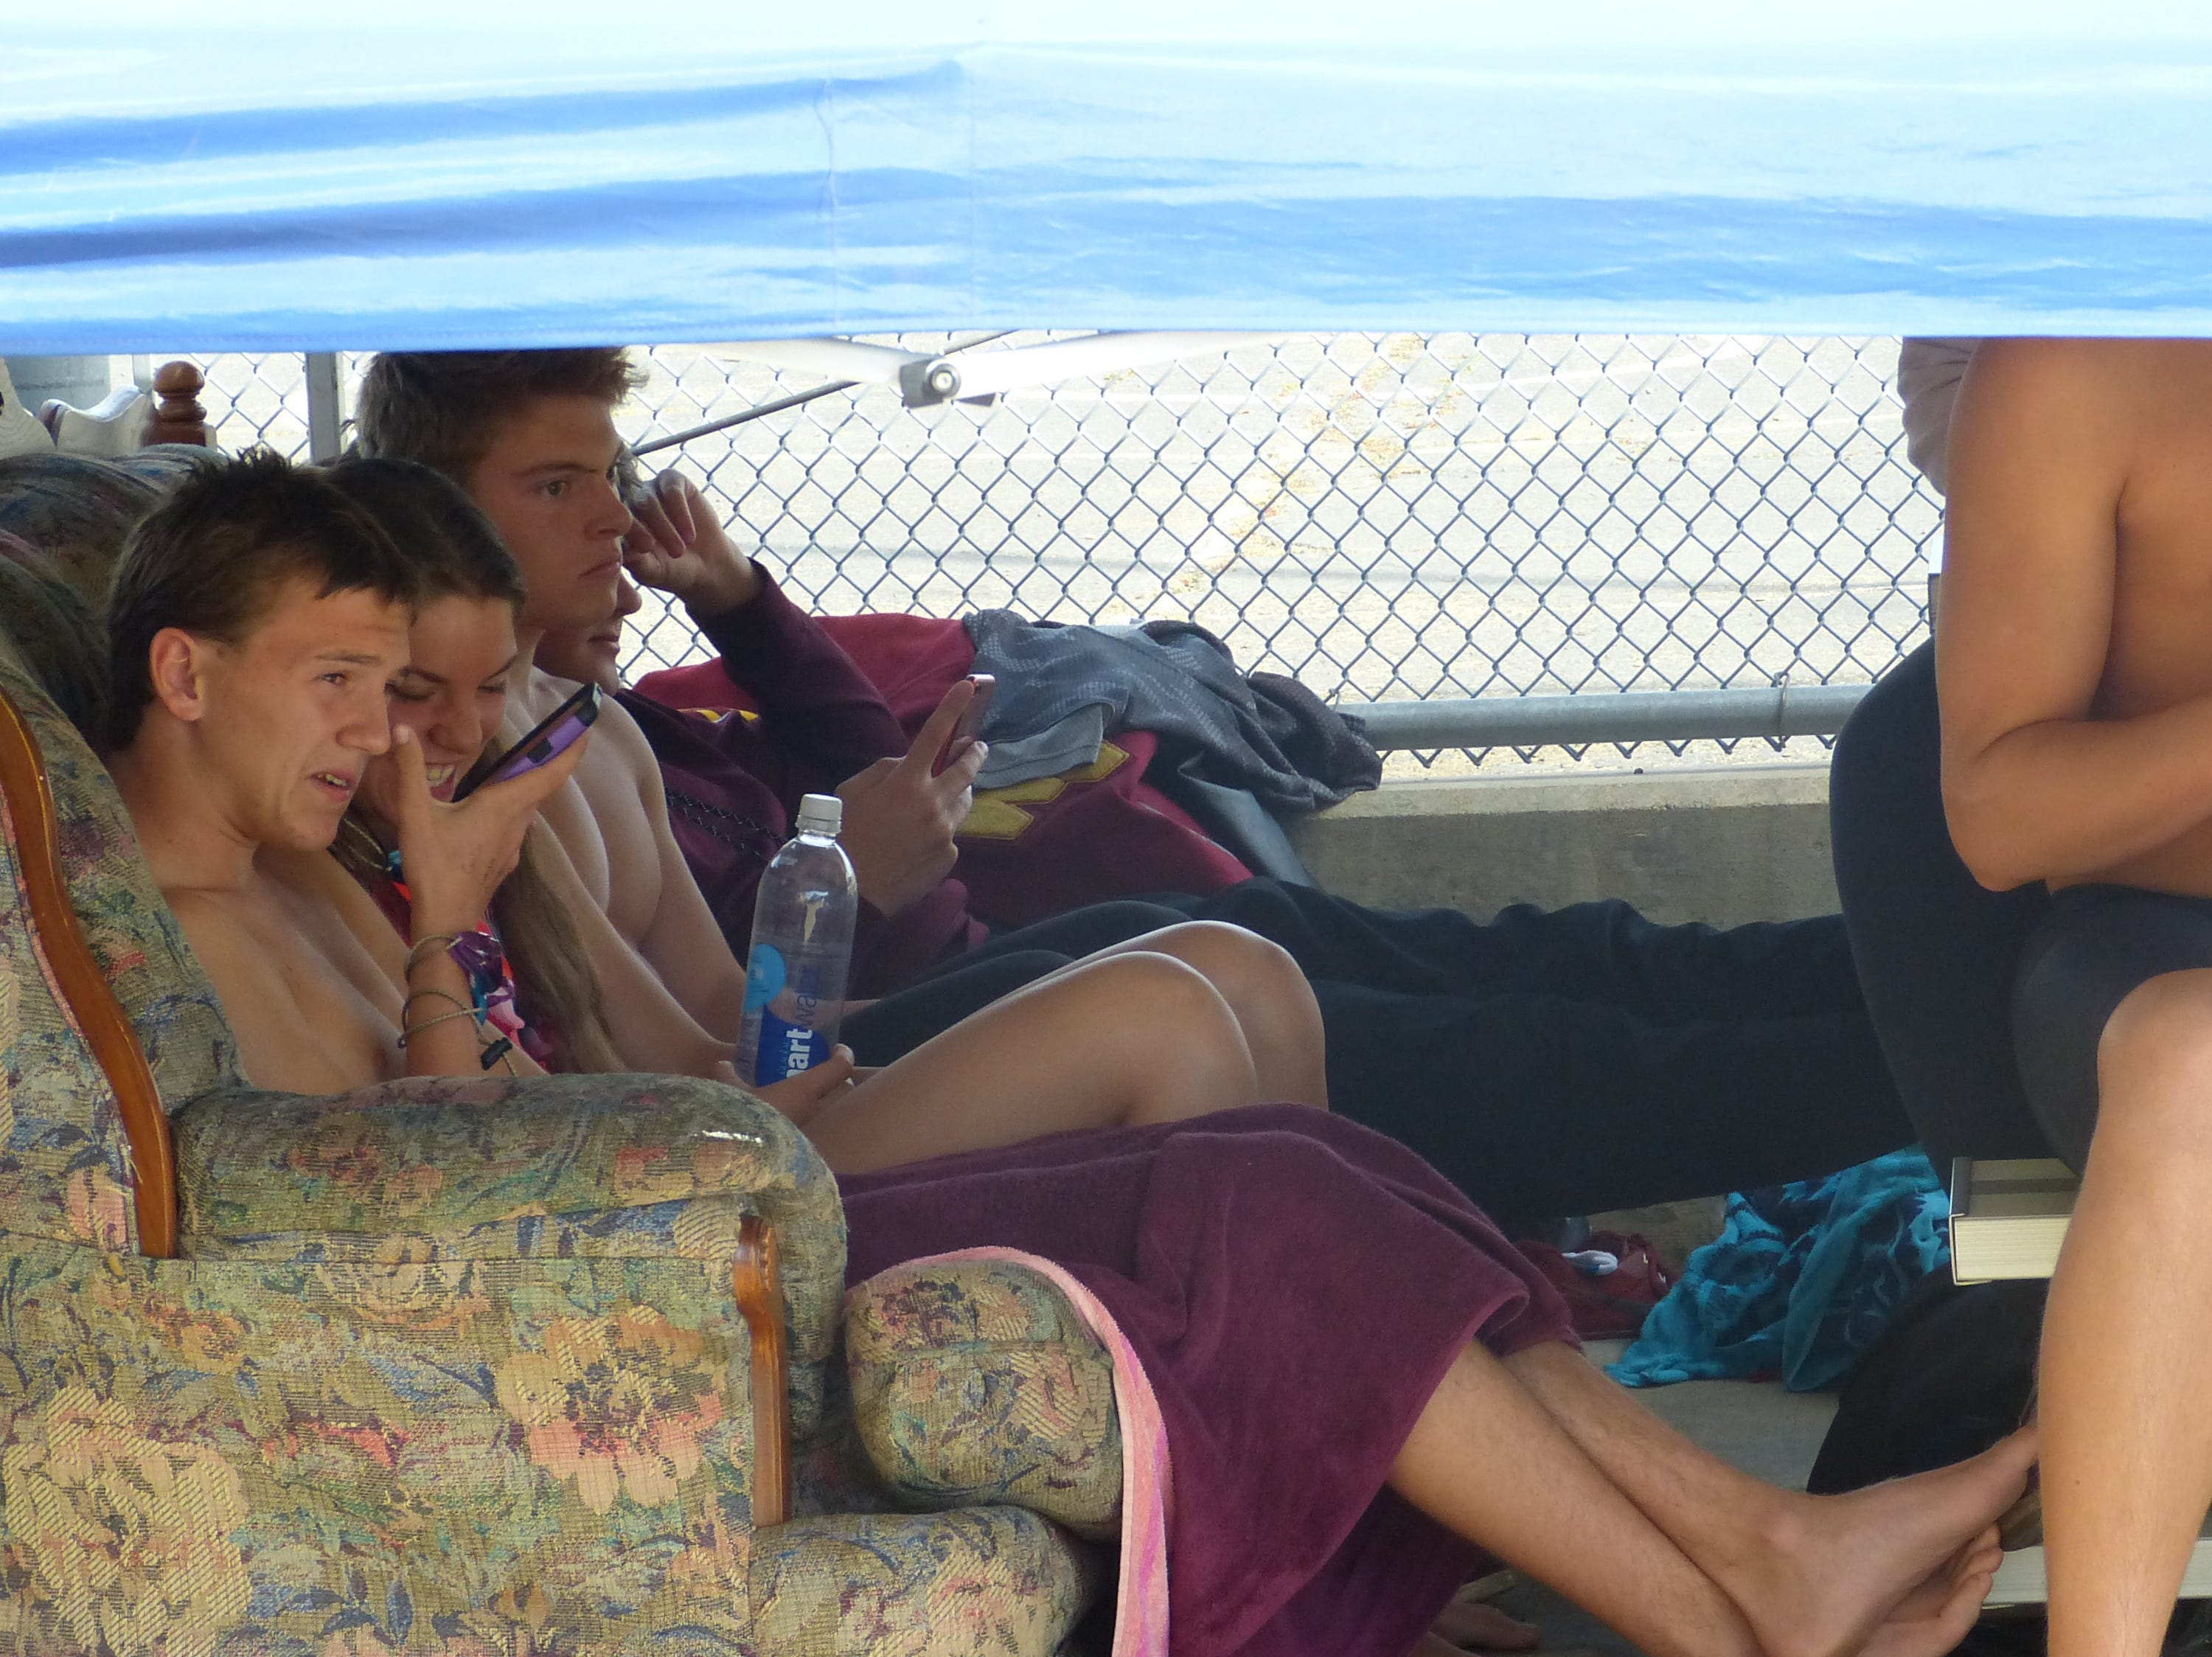 West Valley swimmers hang out on a couch under their tent between events Wednesday at the NSCIF trials for Division 2 schools at West Valley High School on Oct. 24, 2018.